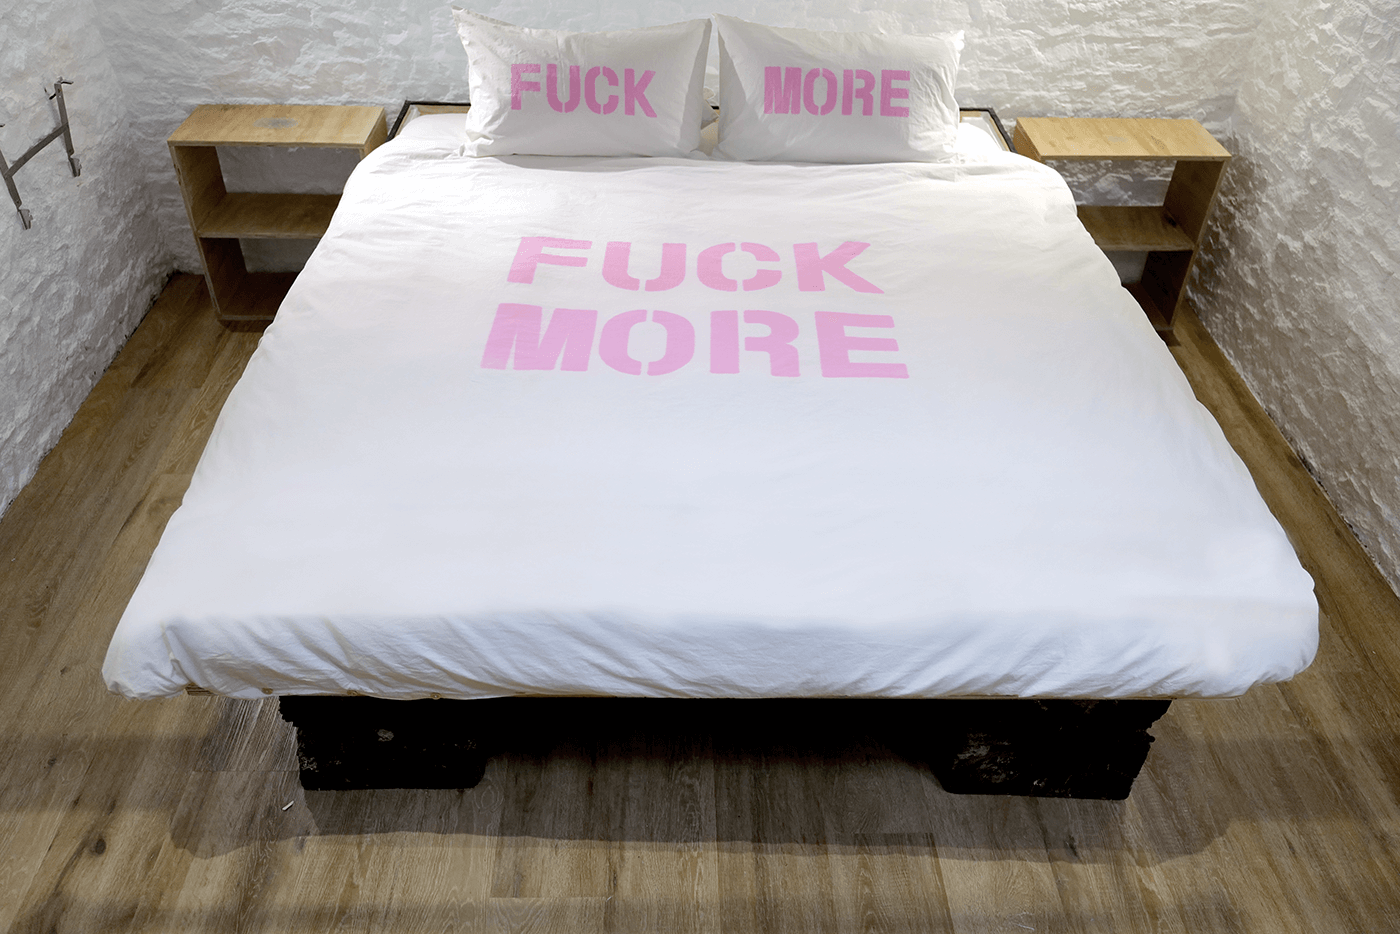 Fuck More/Fuck Off Duvet Cover and Pillows Set